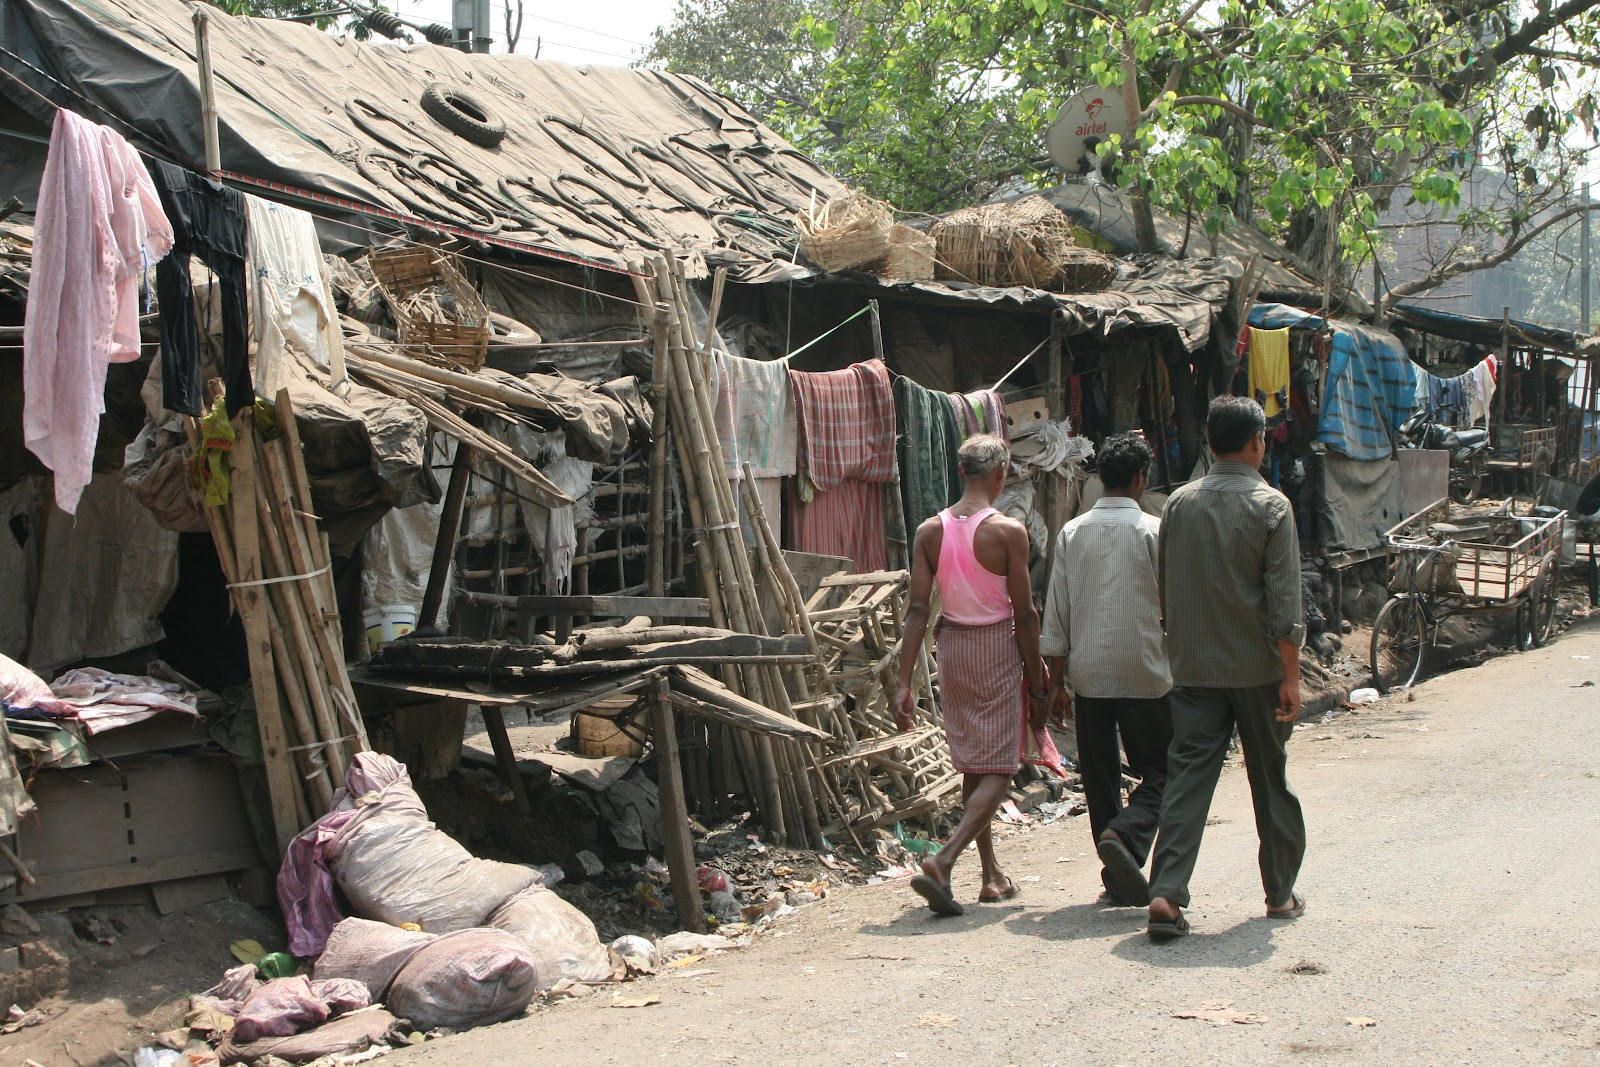 land tenure in the slums of Kenya's slum dwellers tangles over tenure it was named after a british veteran of the second world war who got the land from the economist.